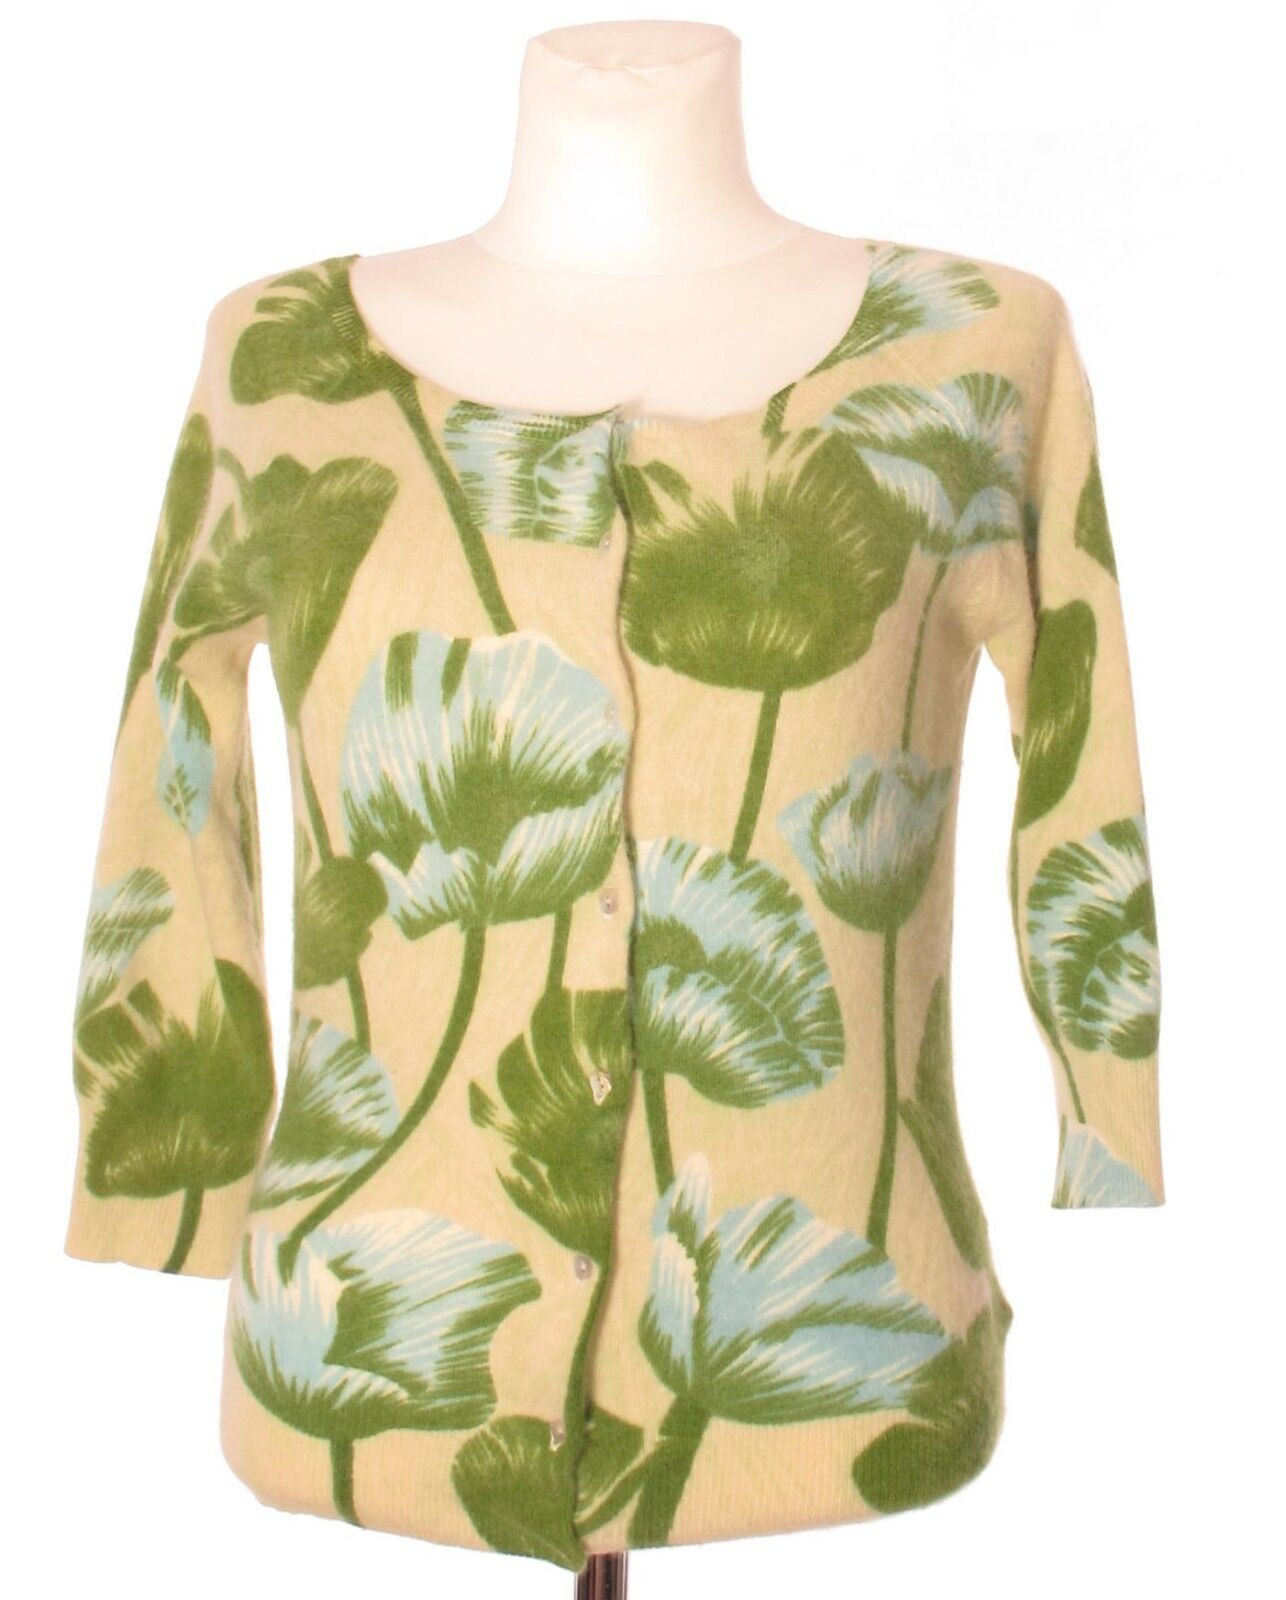 KING LOUIE Women's Angora Lambswool Wool Green Floral Floral Floral 3 4 Sleeve Cardigan M 2d0879